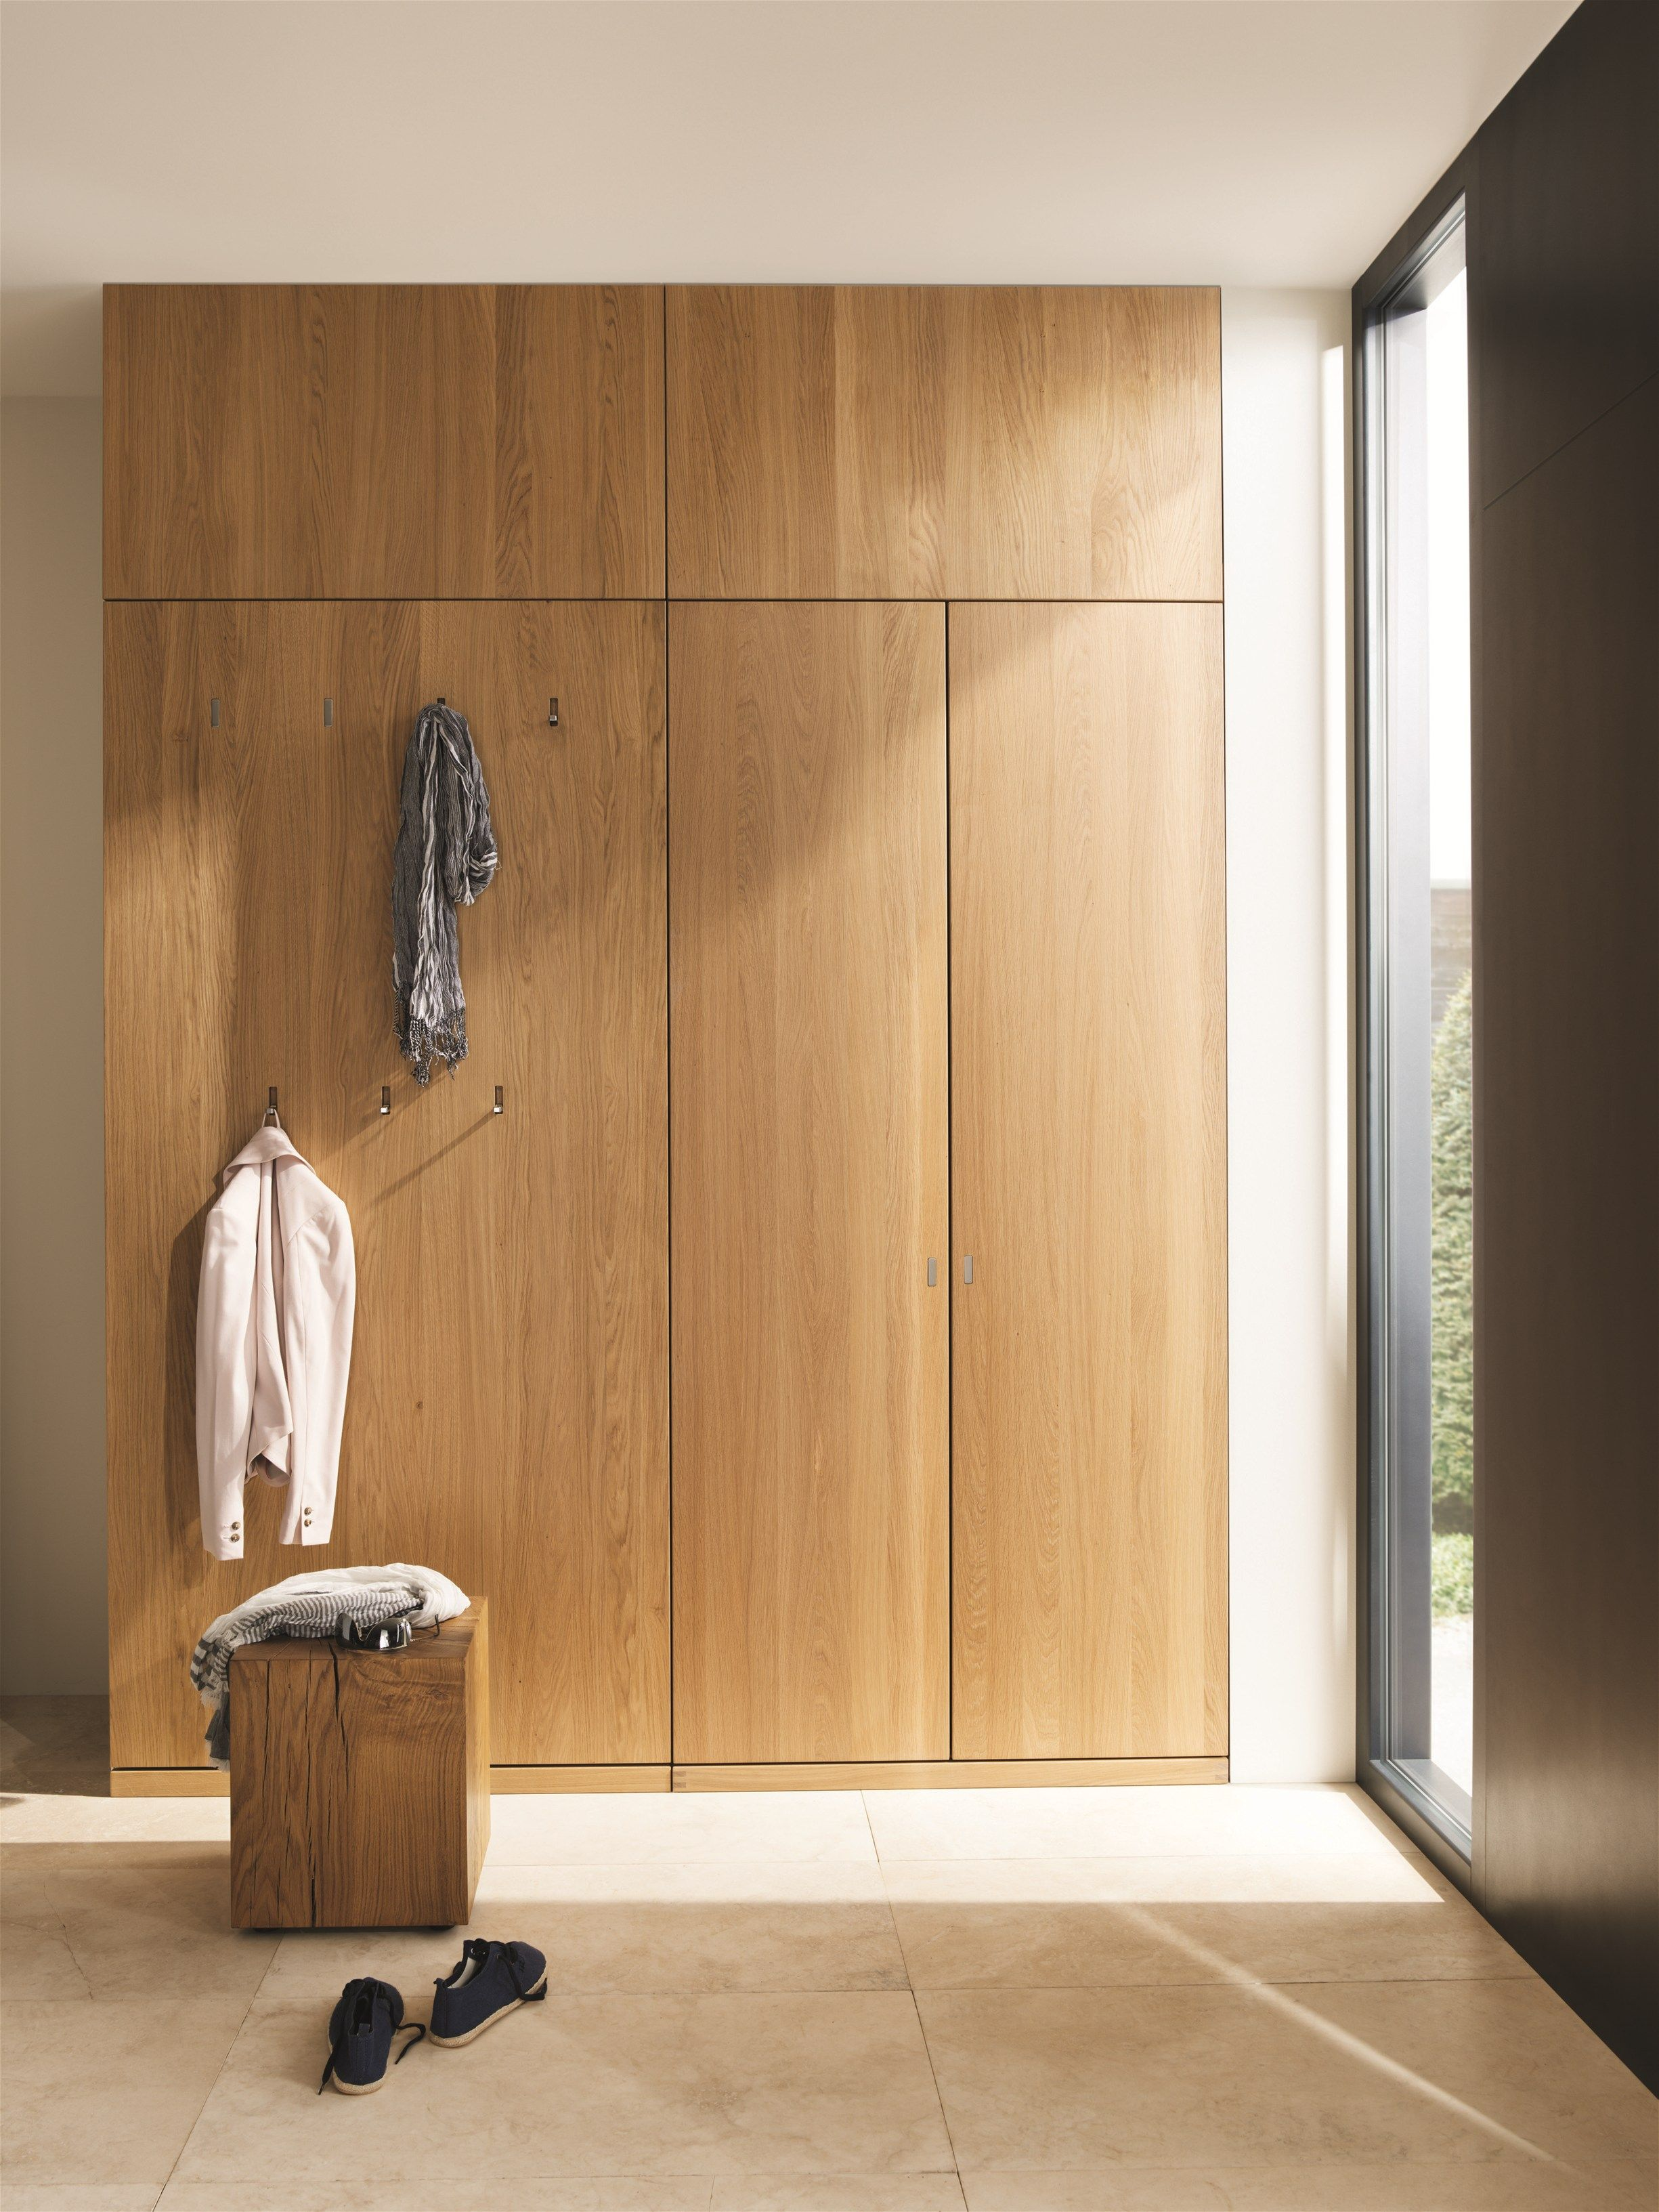 Team 7 Cubus Wooden Hallway Unit Cubus Pure Cubus Pure Collection By Team